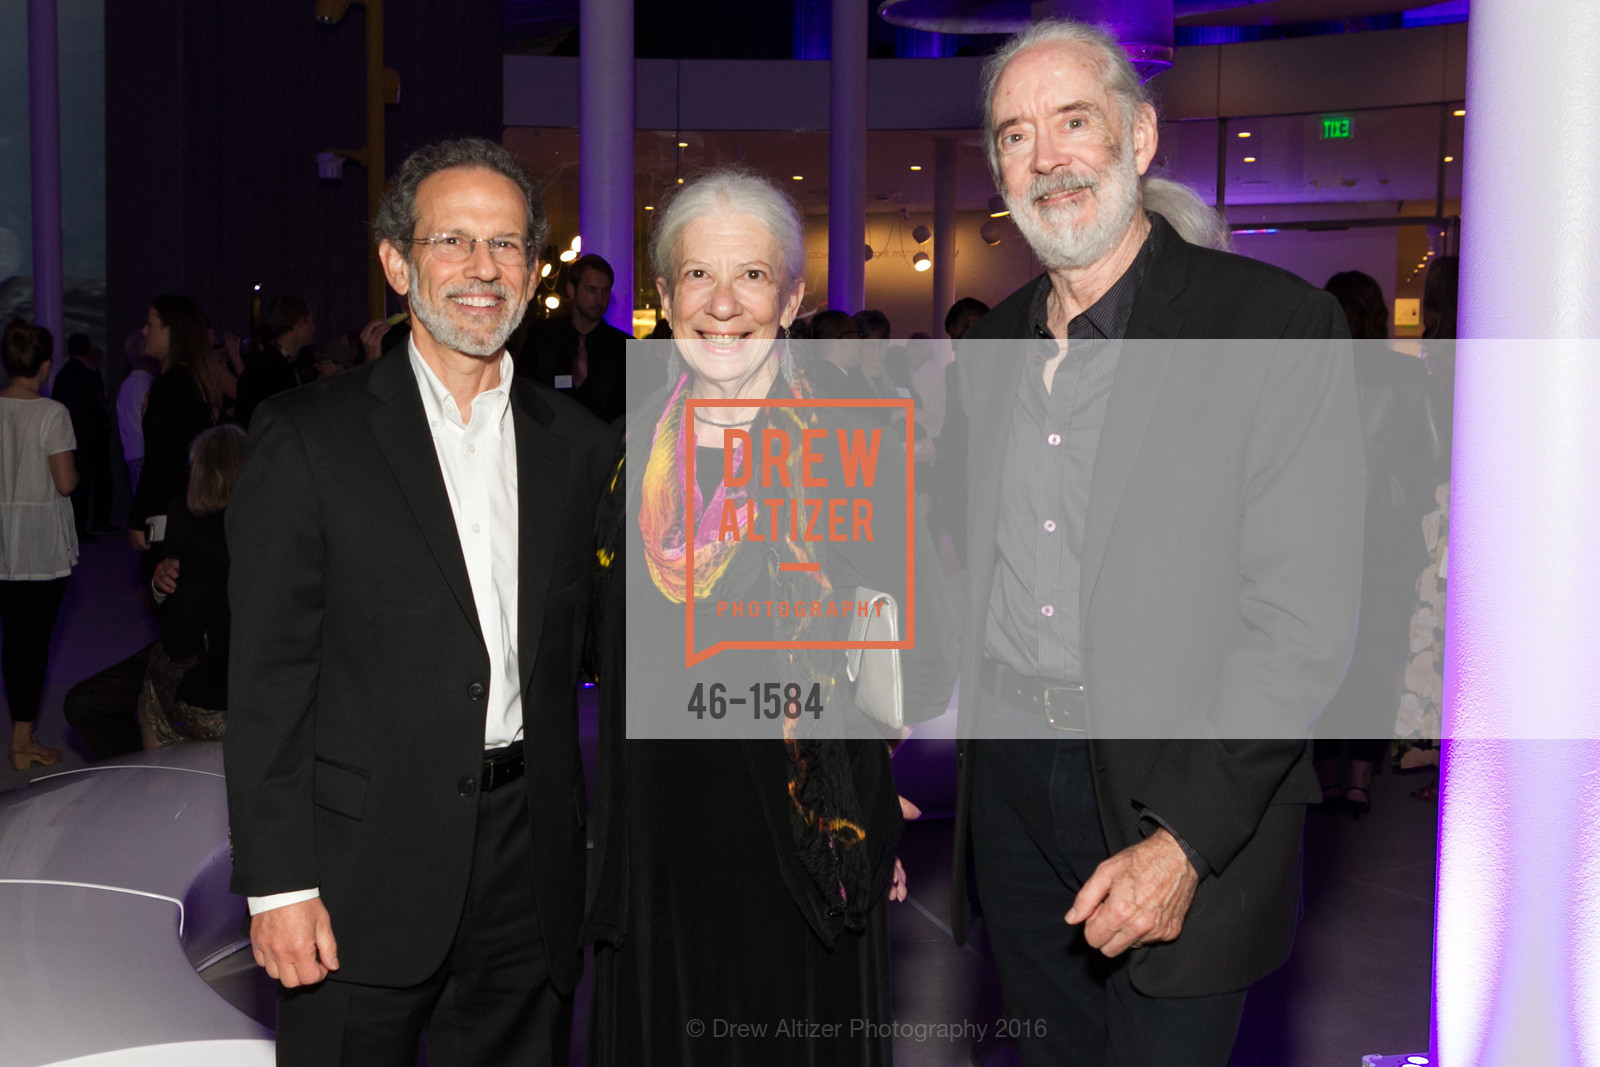 Bob Segar, Libby Bloom, Tom Bloom, Photo #46-1584